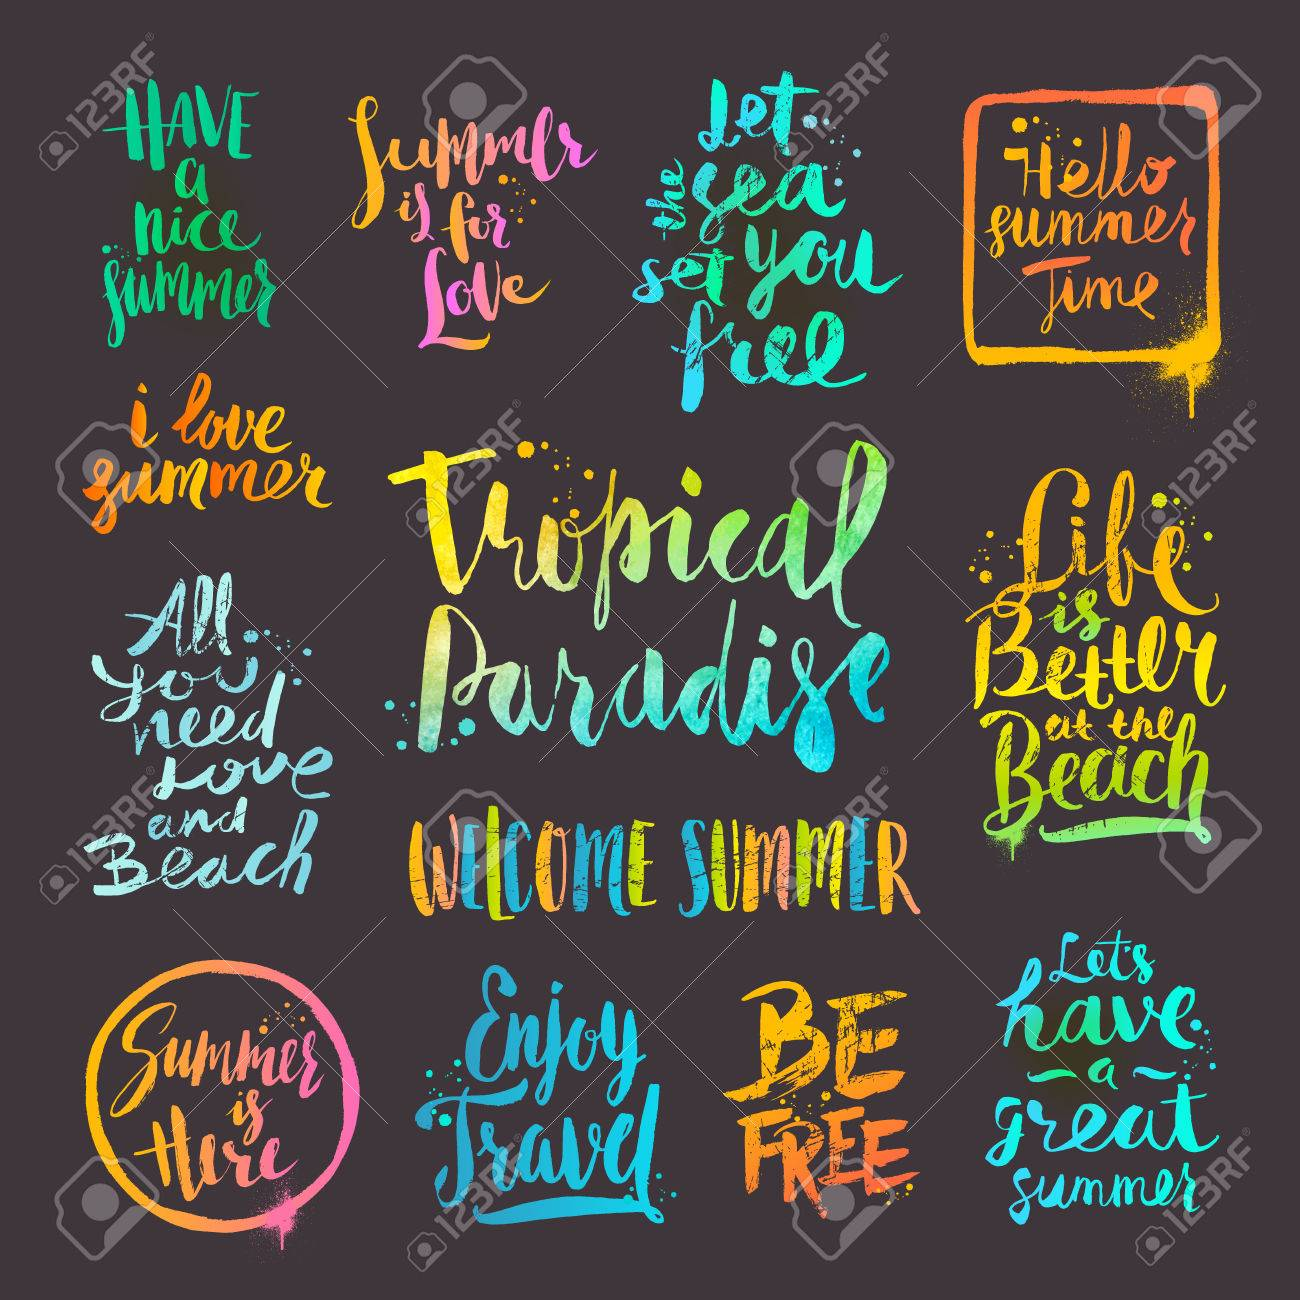 Summer Holidays And Vacation Quotes Phrases Greetings Set Of Calligraphy Stock Vector